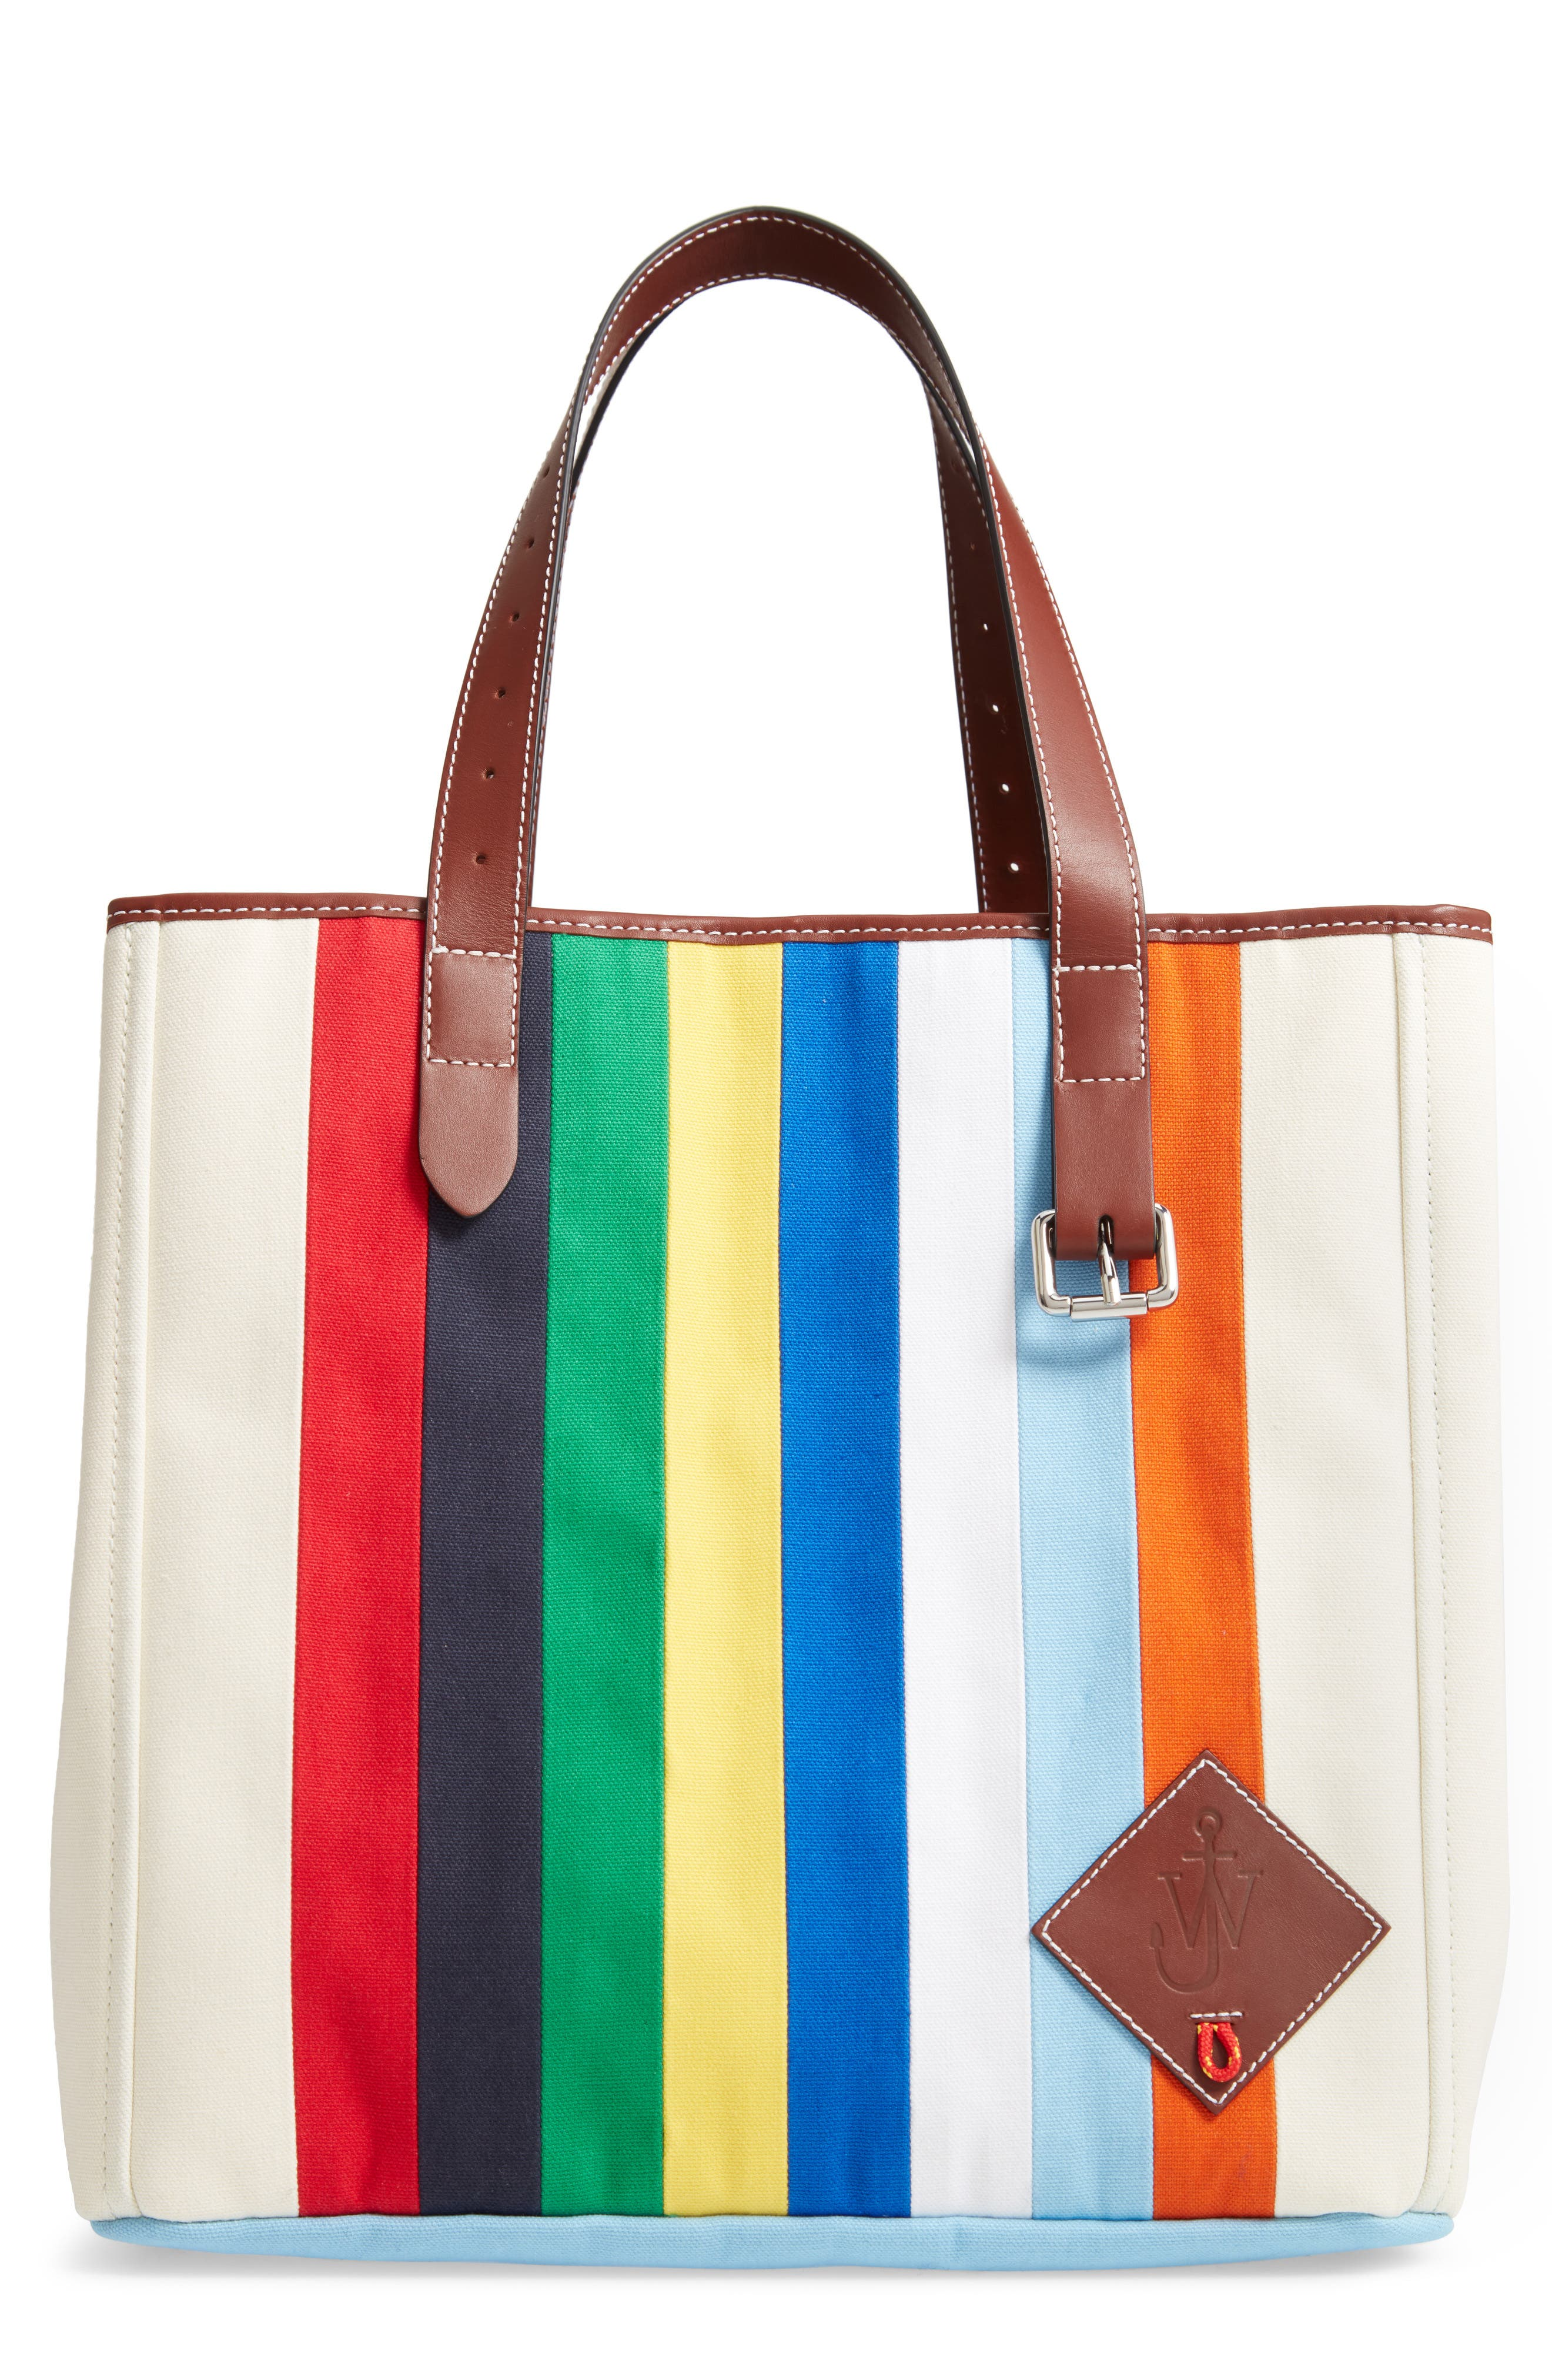 J.w.anderson PATCHWORK BELT CANVAS TOTE - IVORY